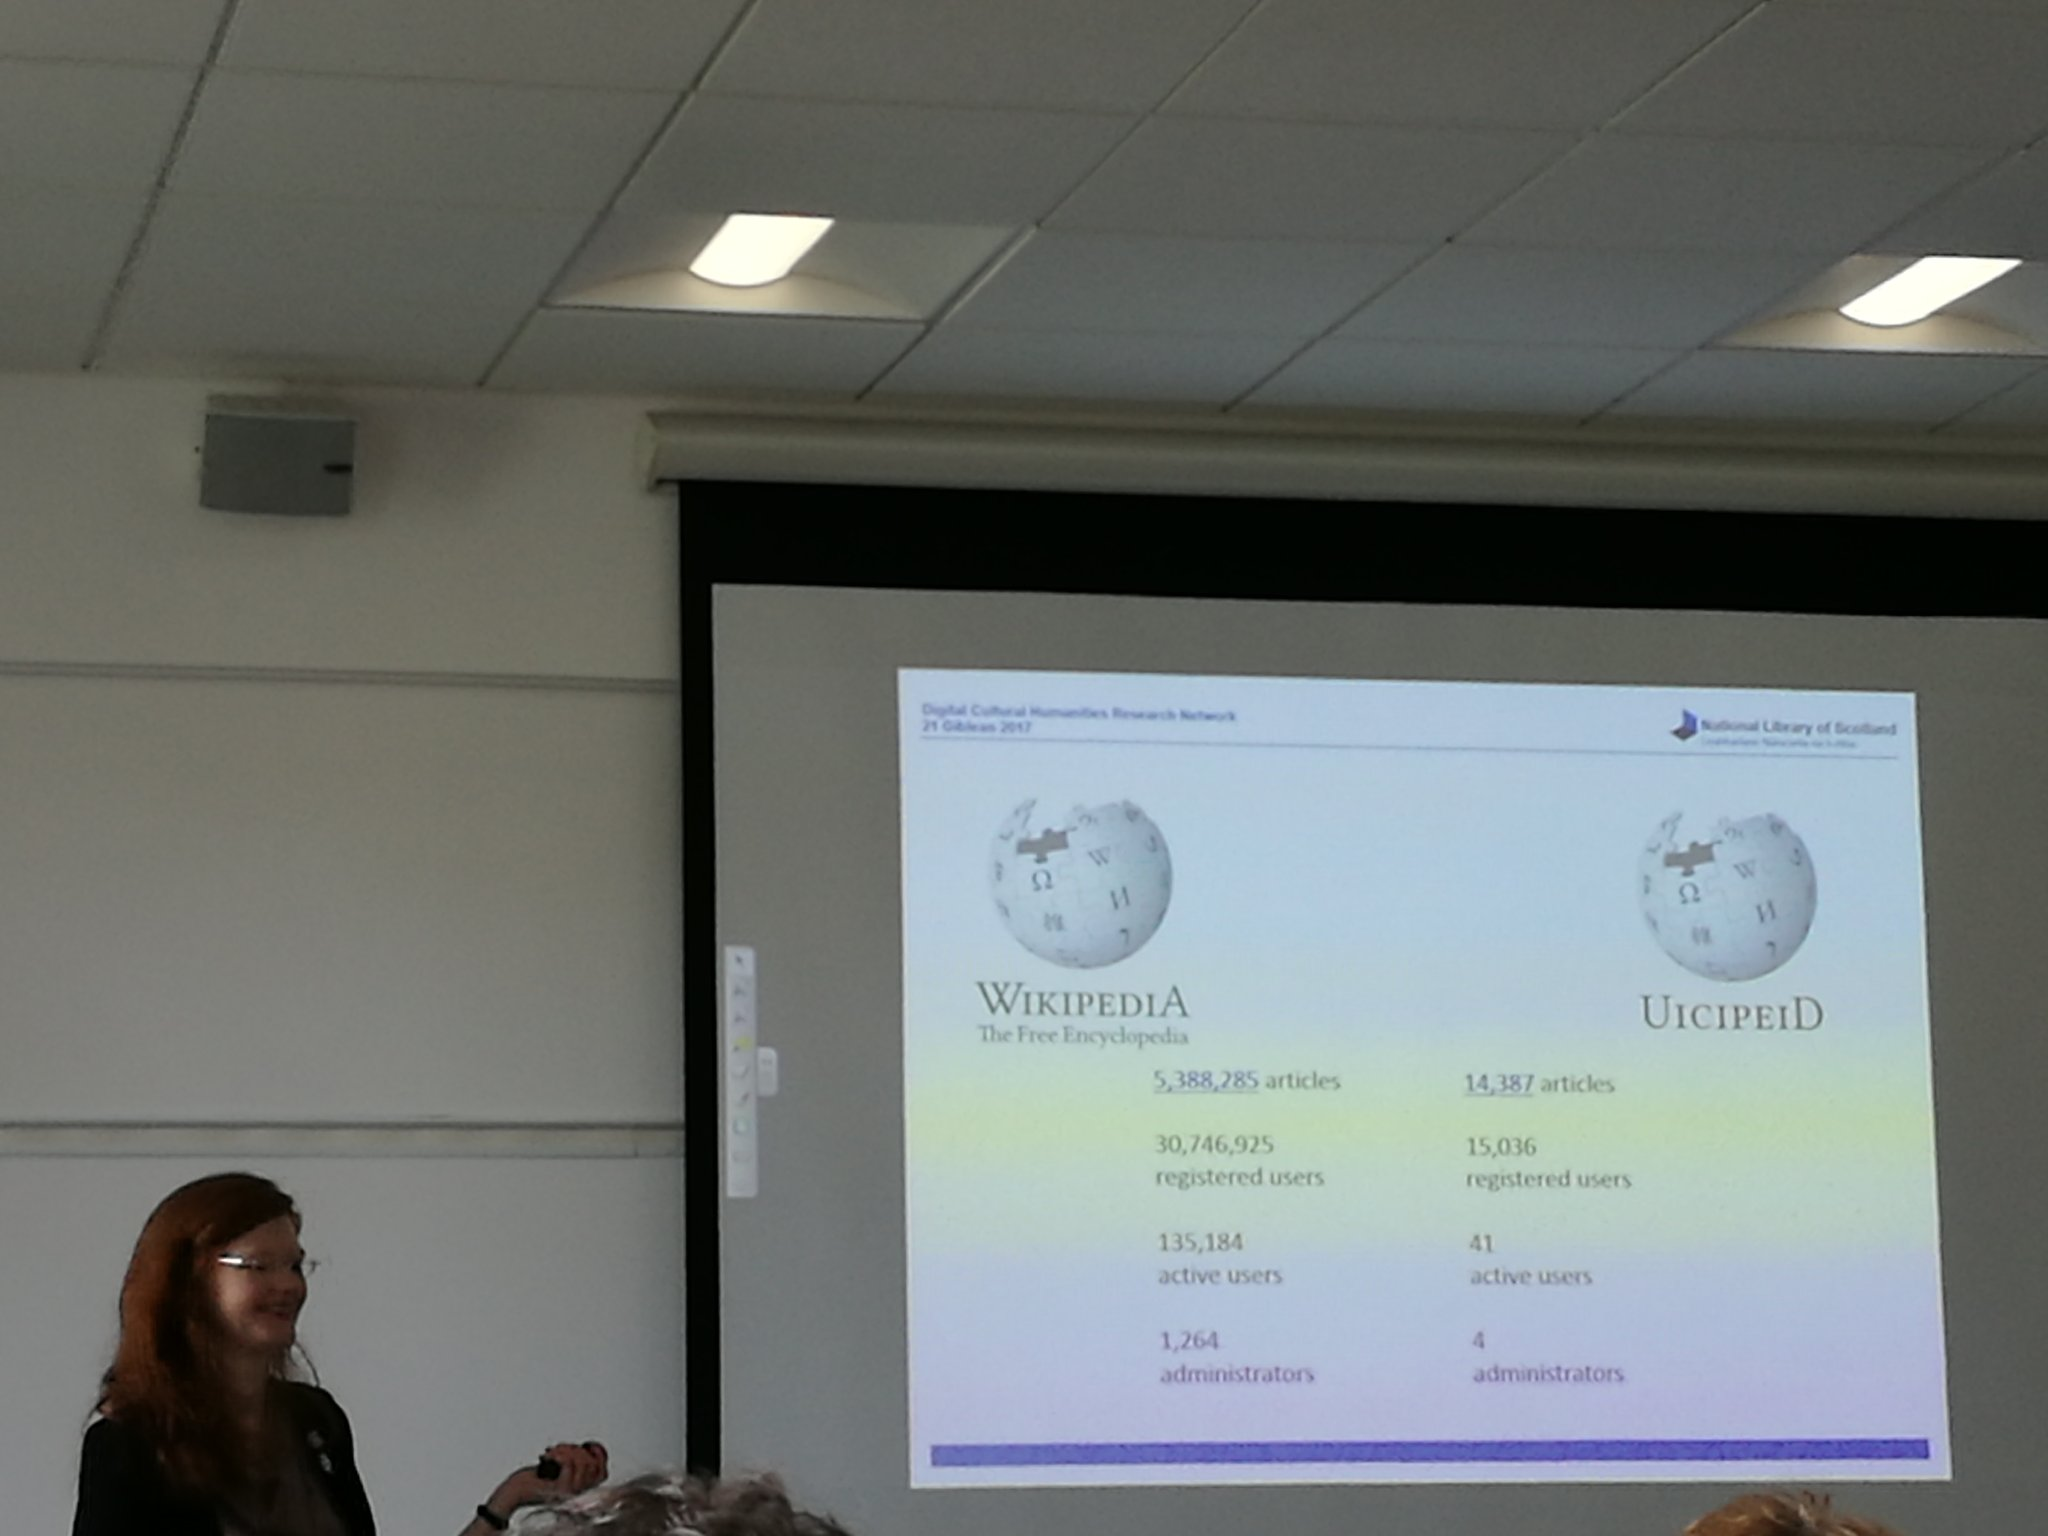 One challenge is having a #crowdsourcing model but not enough participants for a crowd on Gaelic wikipedia. #dchrn https://t.co/SpMIP8URka